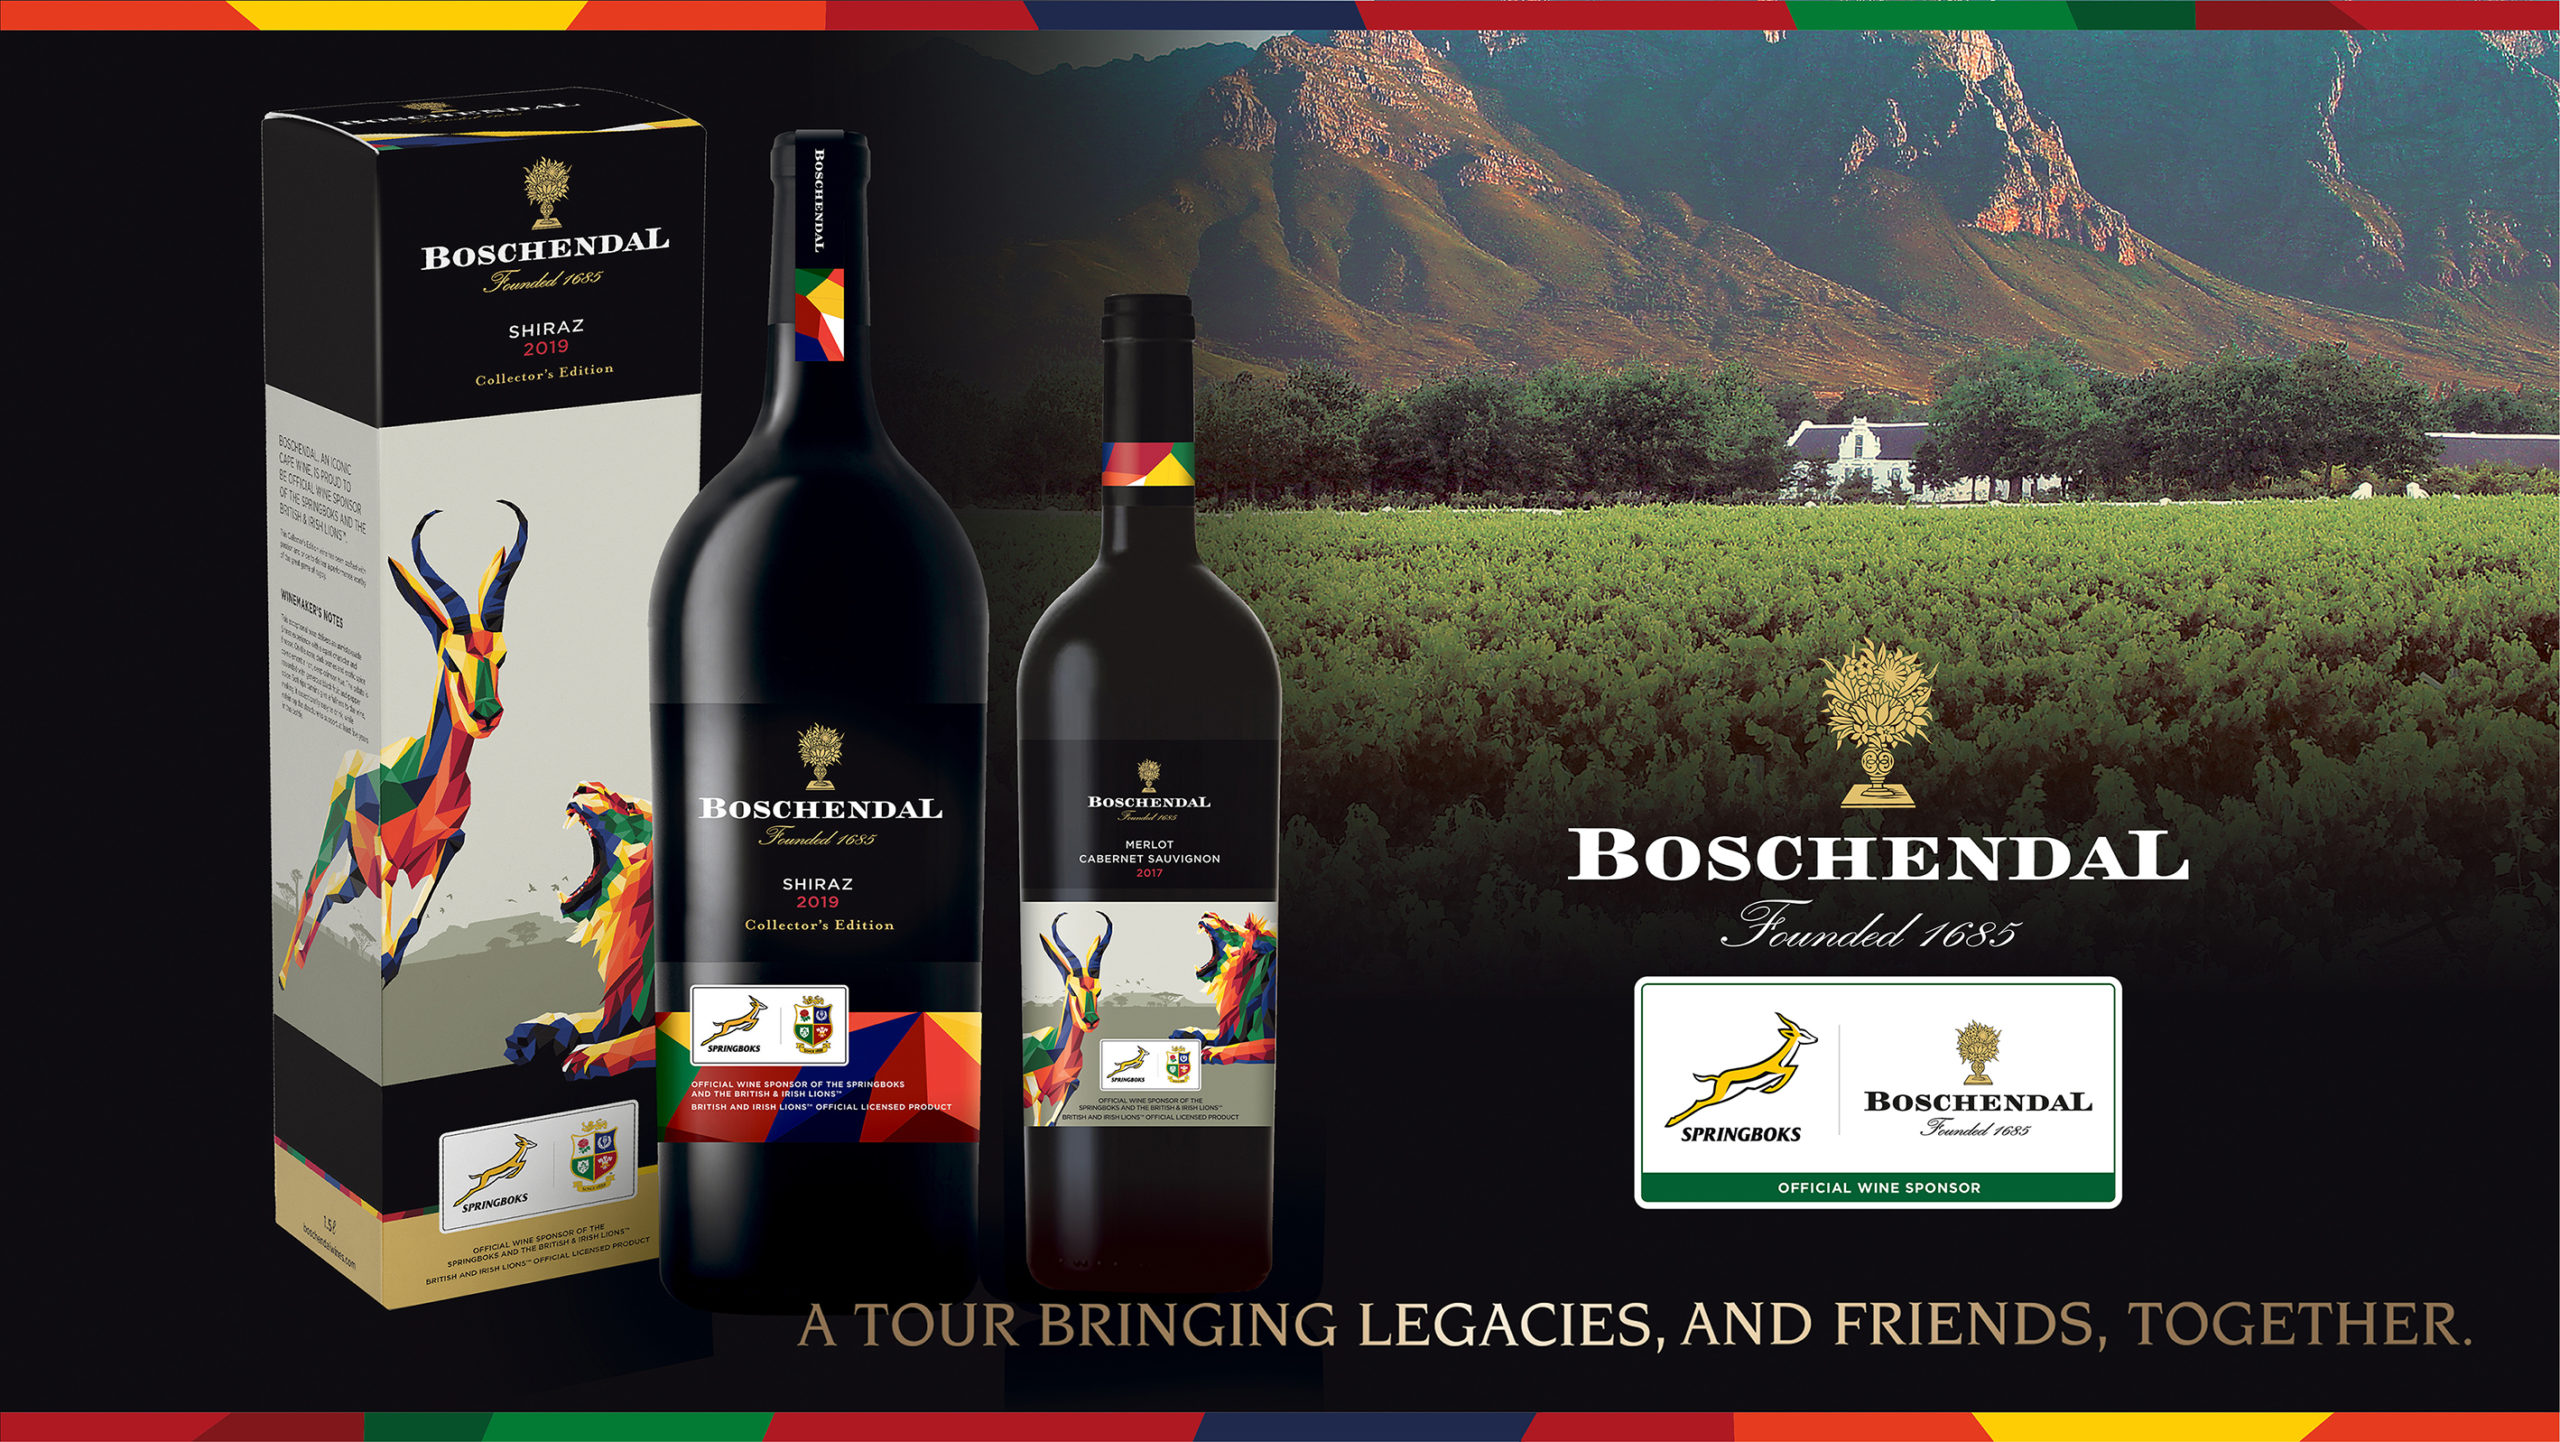 Enduring Spirit of Rugby Ensures Success of Lions Tour and Boschendal's Wine Sponsor photo